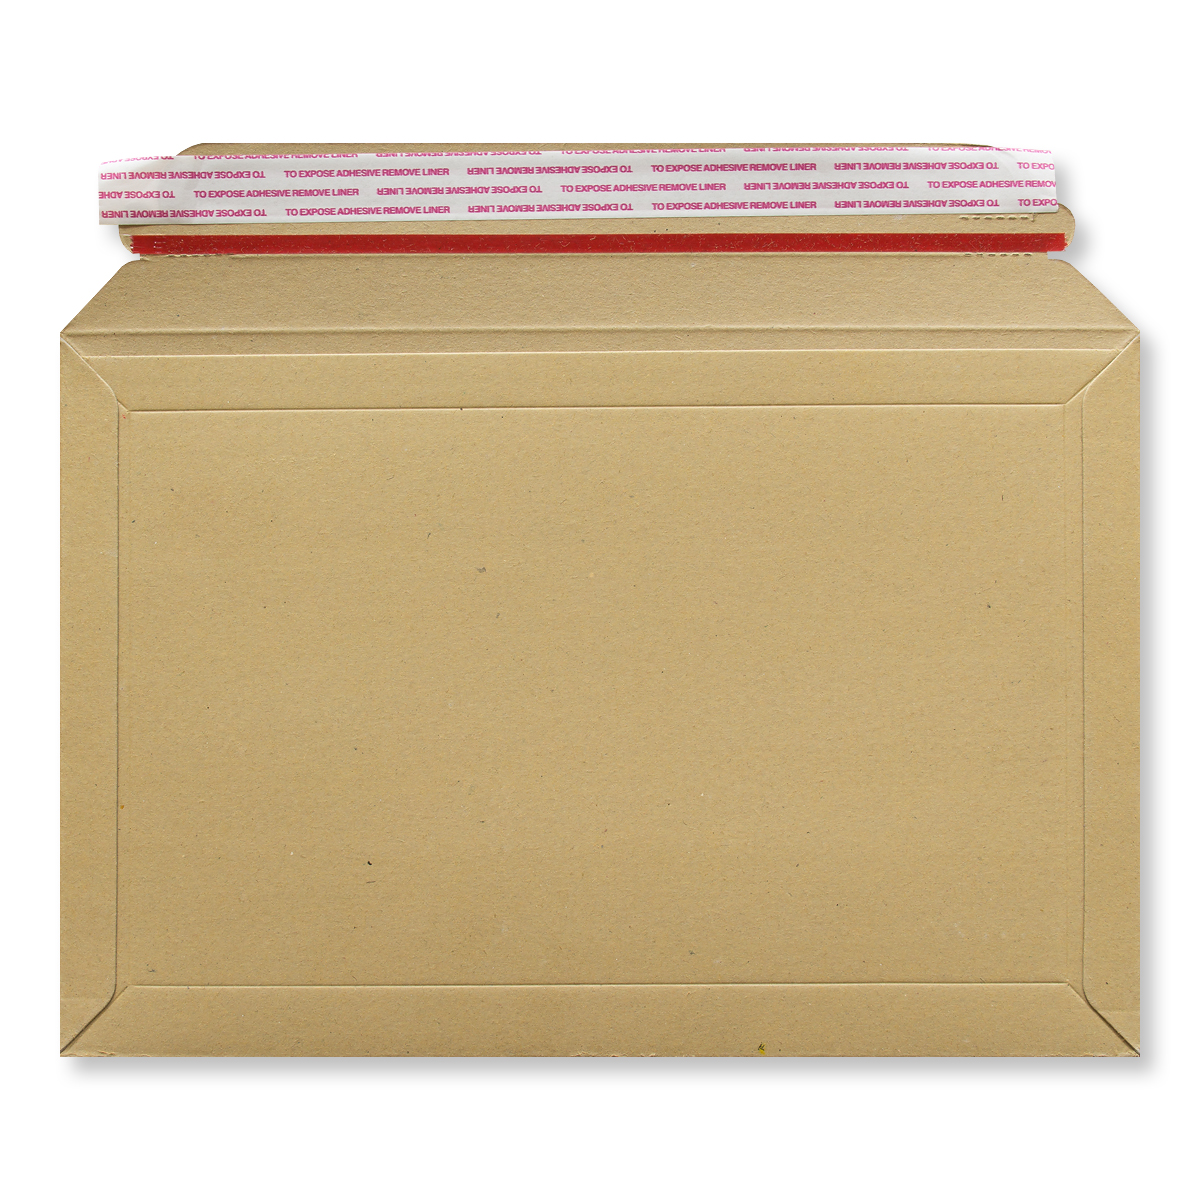 194 x 292mm CAPACITY BOOK MAILERS 400GSM